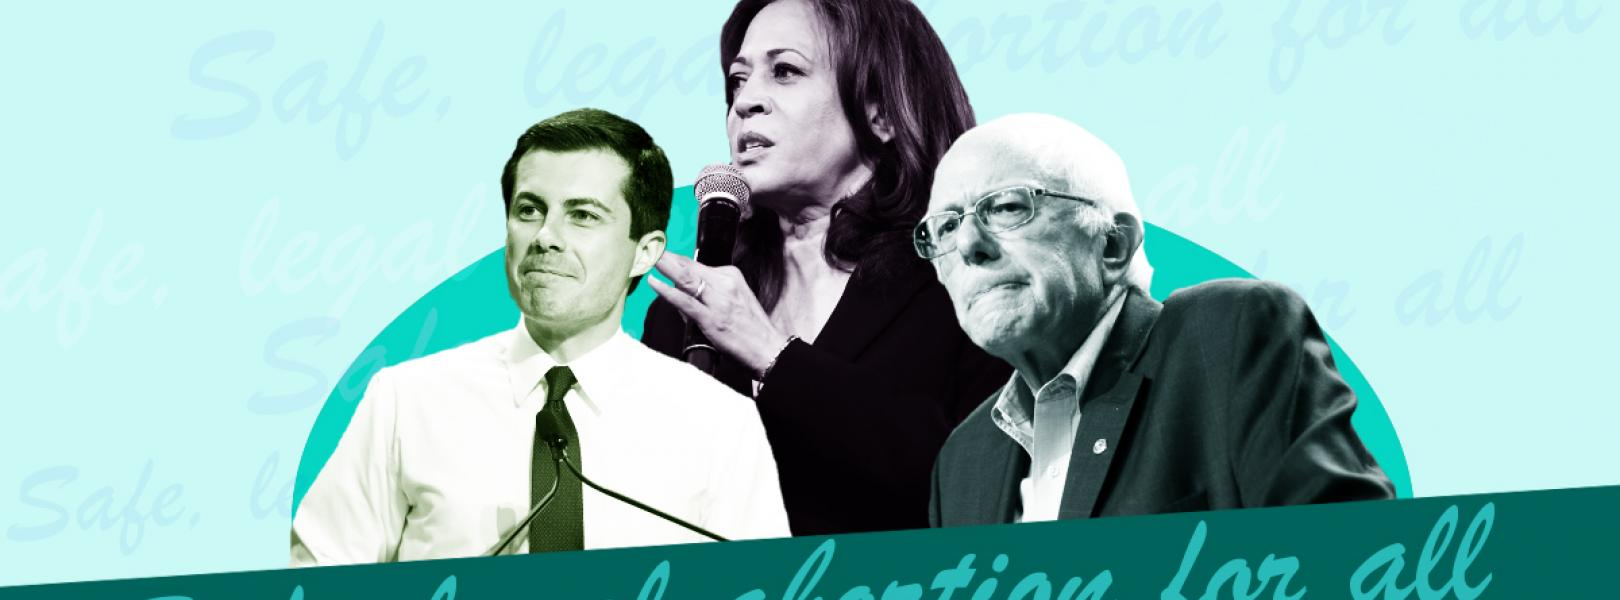 "The words ""Safe, legal abortion for all"" with images of Pete Buttigieg, Kamala Harris, and Bernie Sanders"